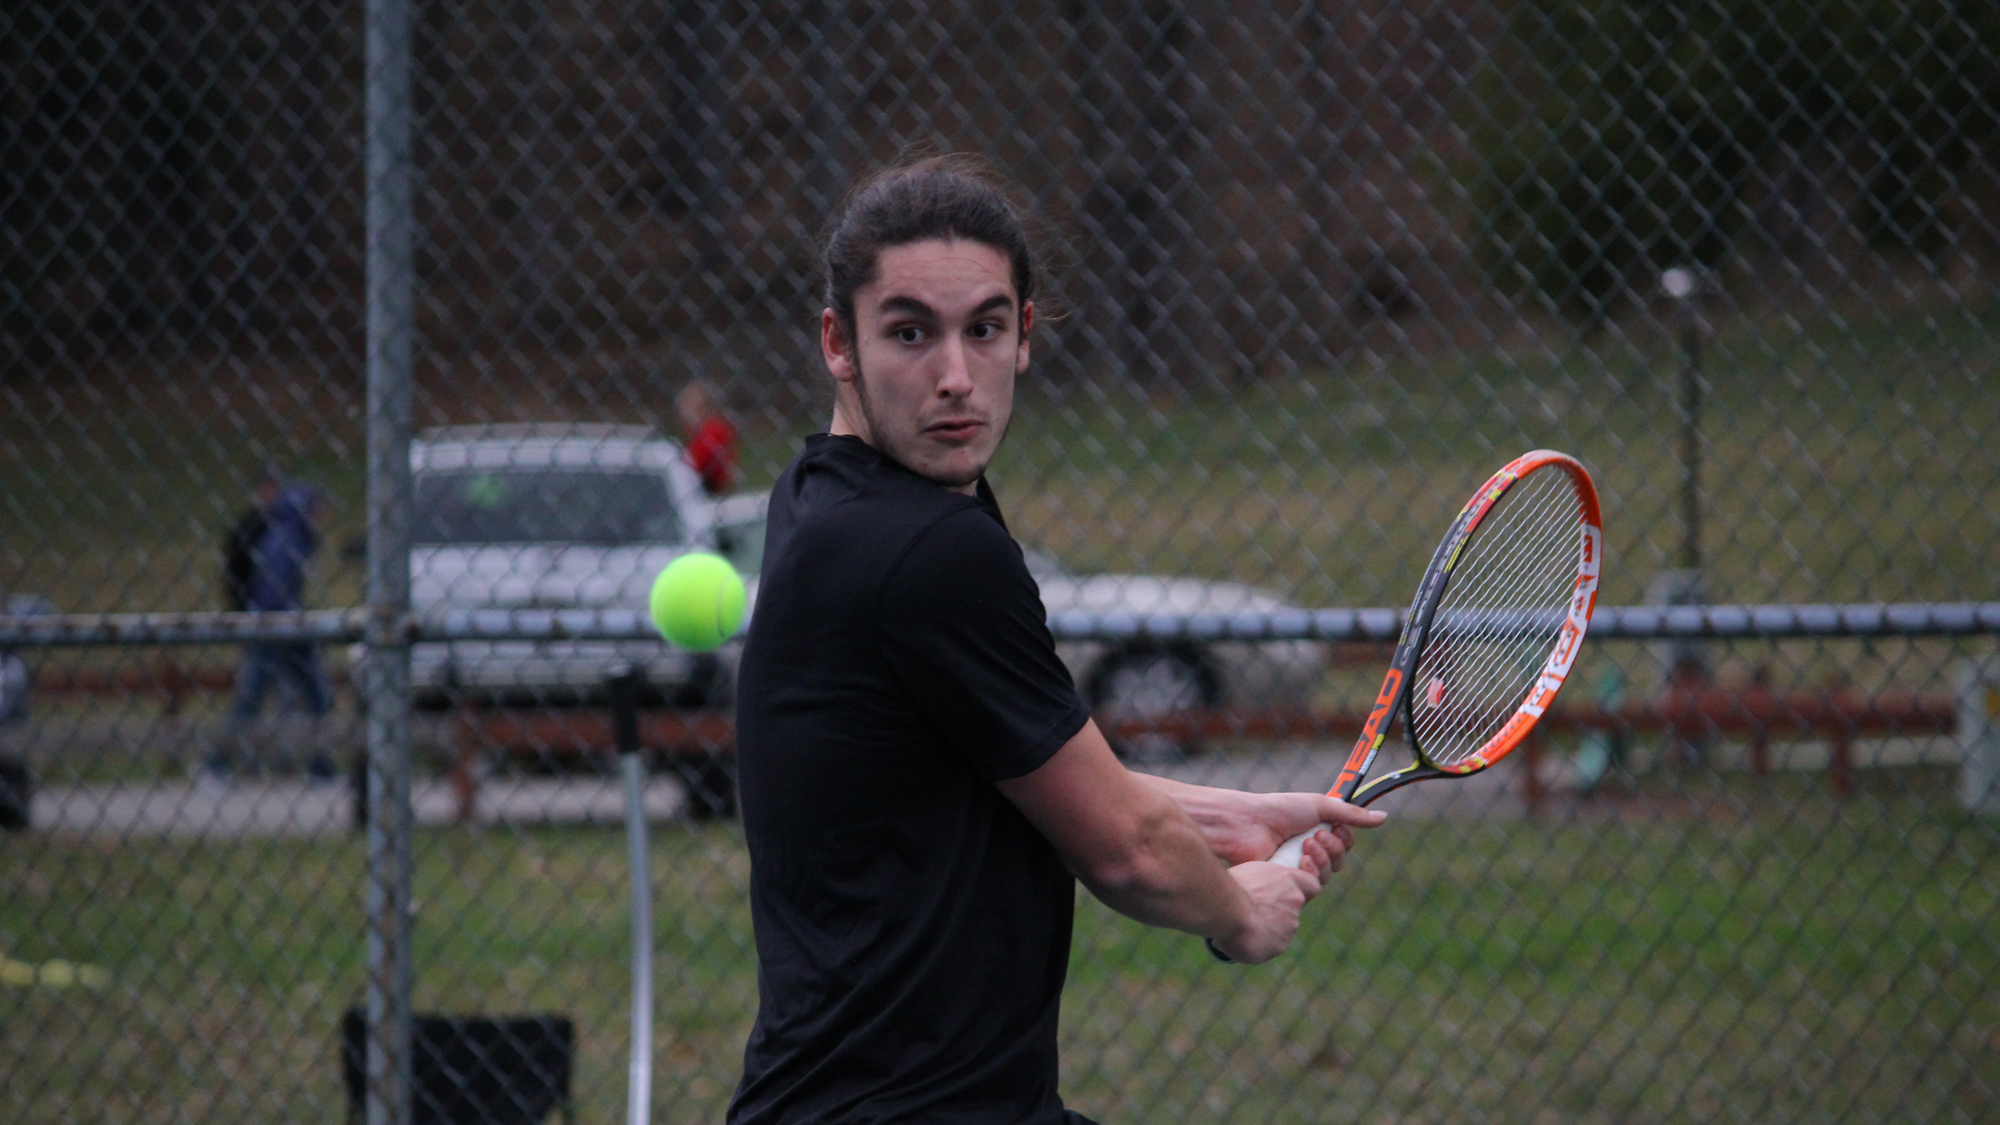 Men's Tennis Sweeps WV State To Close Fall Semester ...